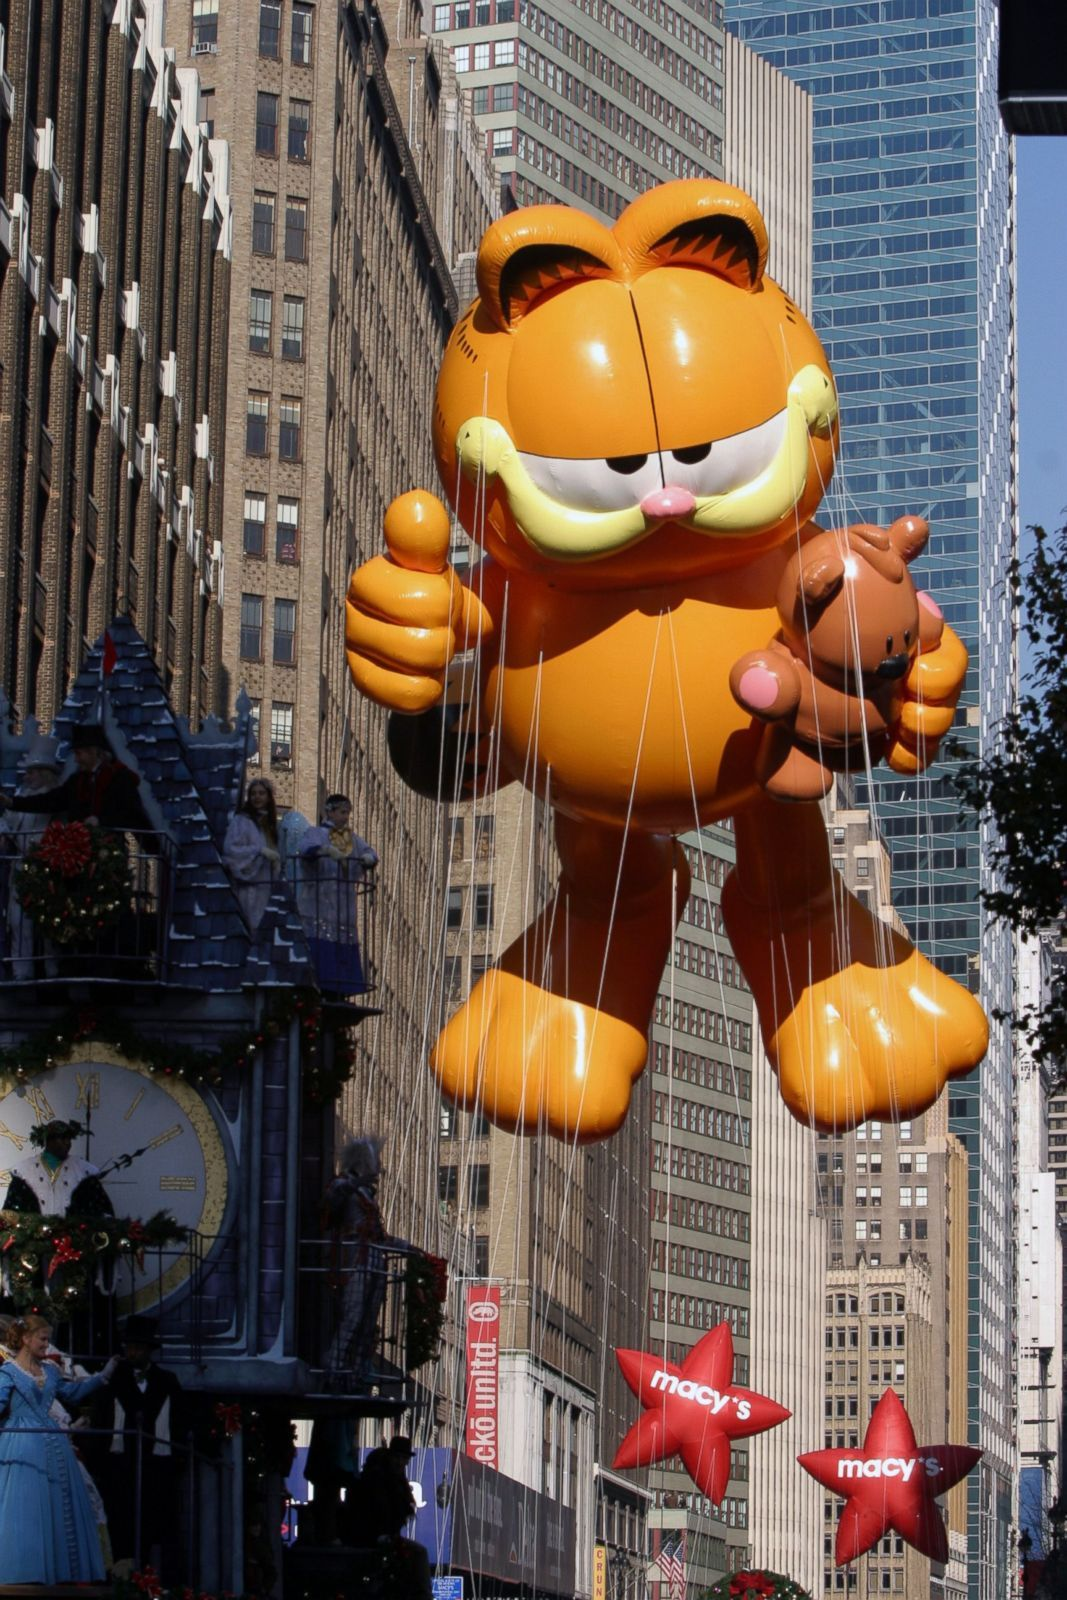 Pin By Deb Mackay On Urban Elements Macy S Thanksgiving Day Parade Thanksgiving Day Parade Macy S Day Parade